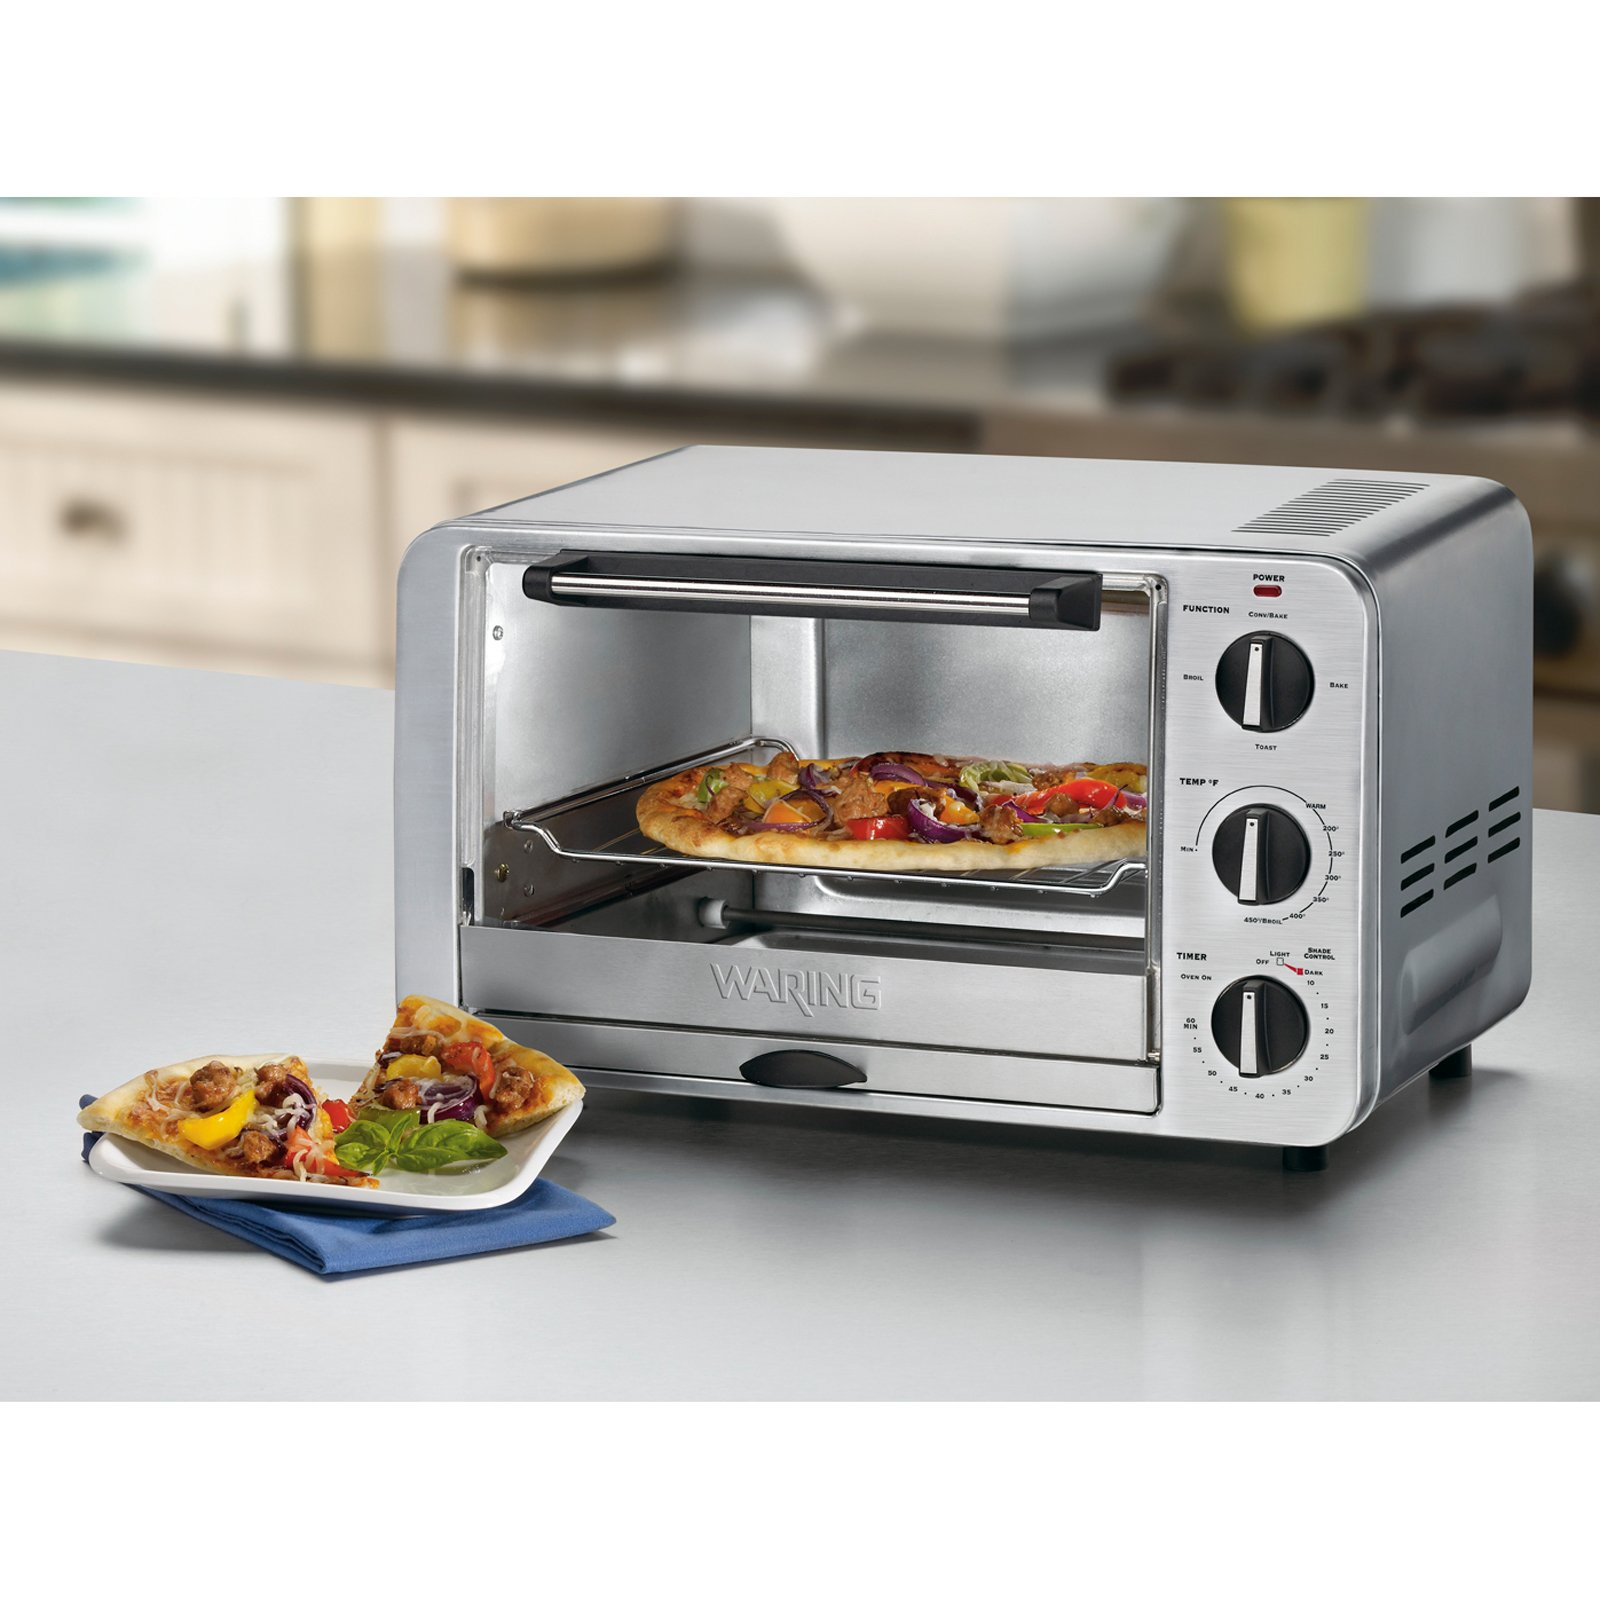 amazon iq breville with watt ovens b com for silver element sale smart toaster oven convection toasters kitchen home